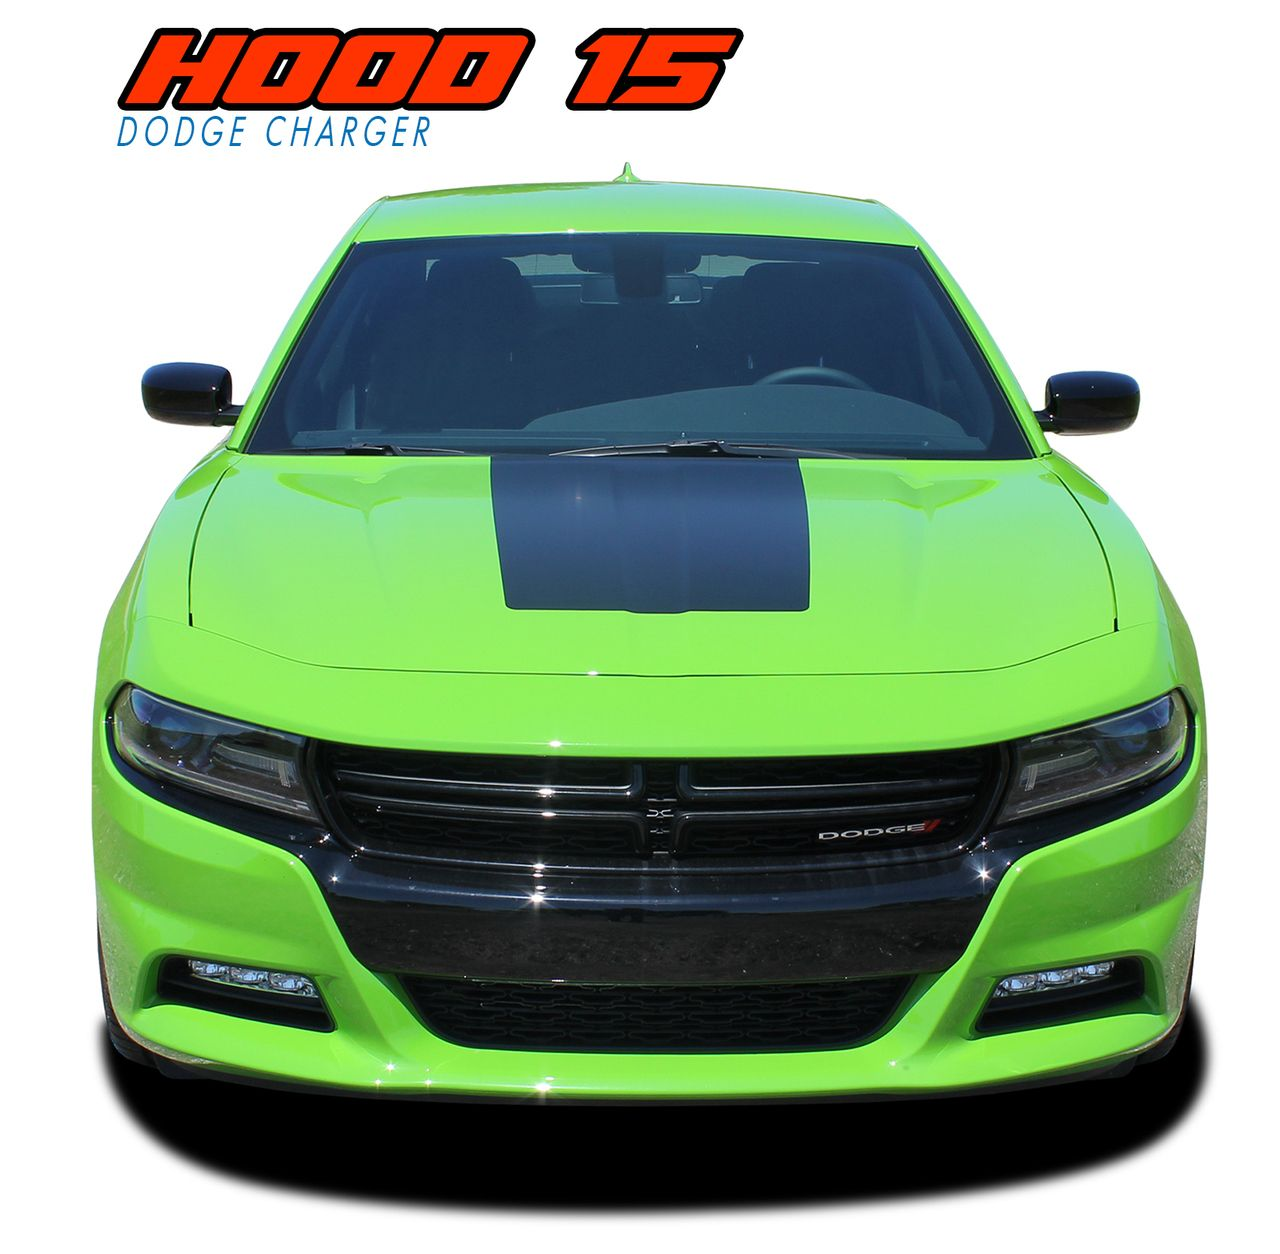 2015 2016 2017 2018 dodge charger daytona hemi srt 392 center hood vinyl graphics decal stripes